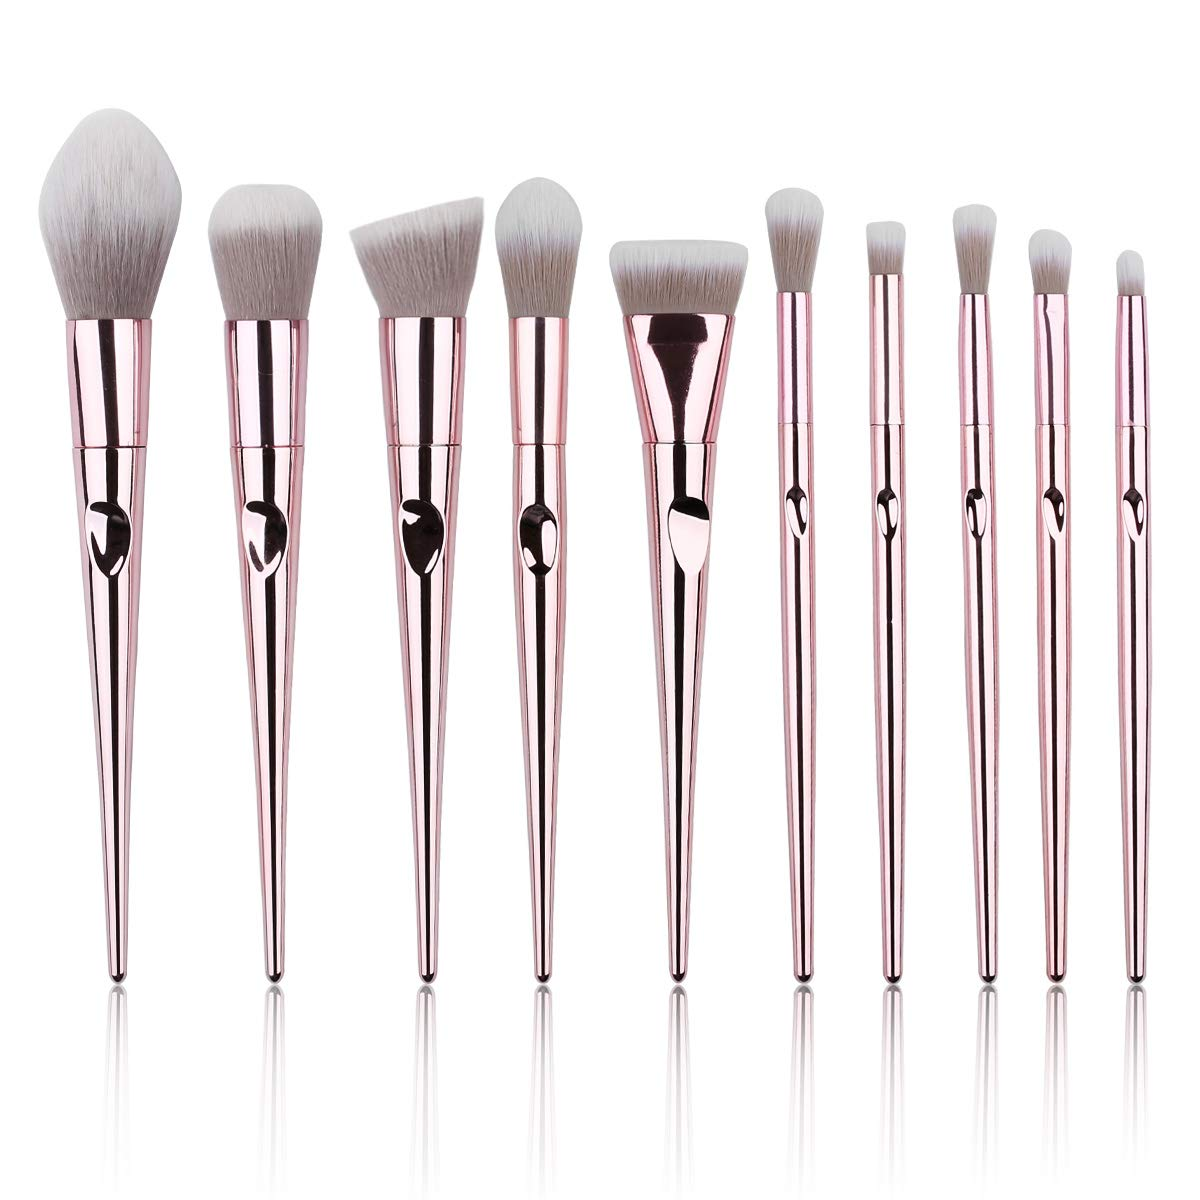 10 PCs Makeup Brush Set Premium Synthetic Foundation Powder Brushes Concealers Eyeshadows Makeup Brushes Kit